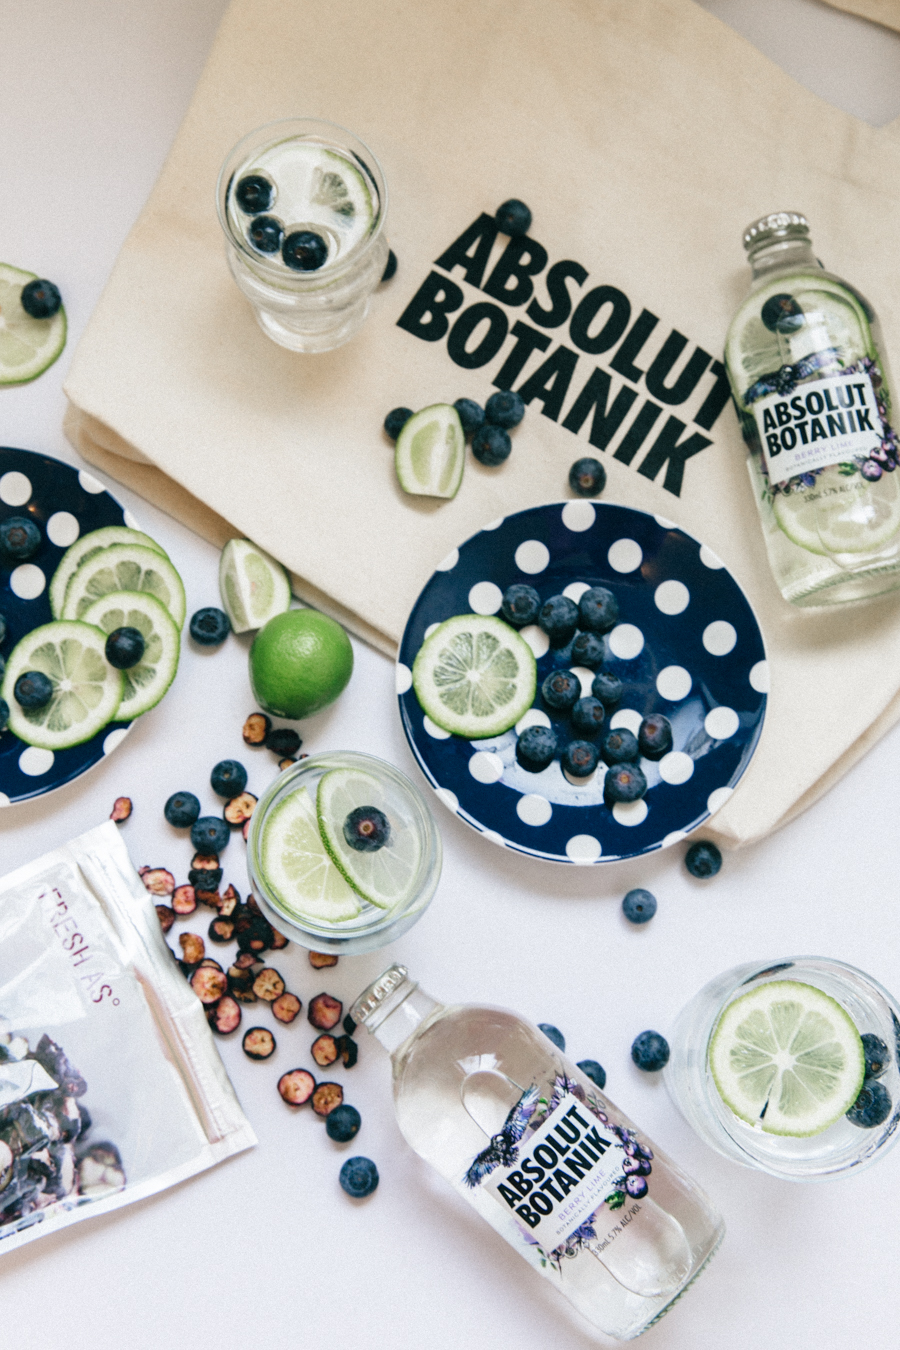 Absolut Botanik Vodka berry lime editorial collaboration.